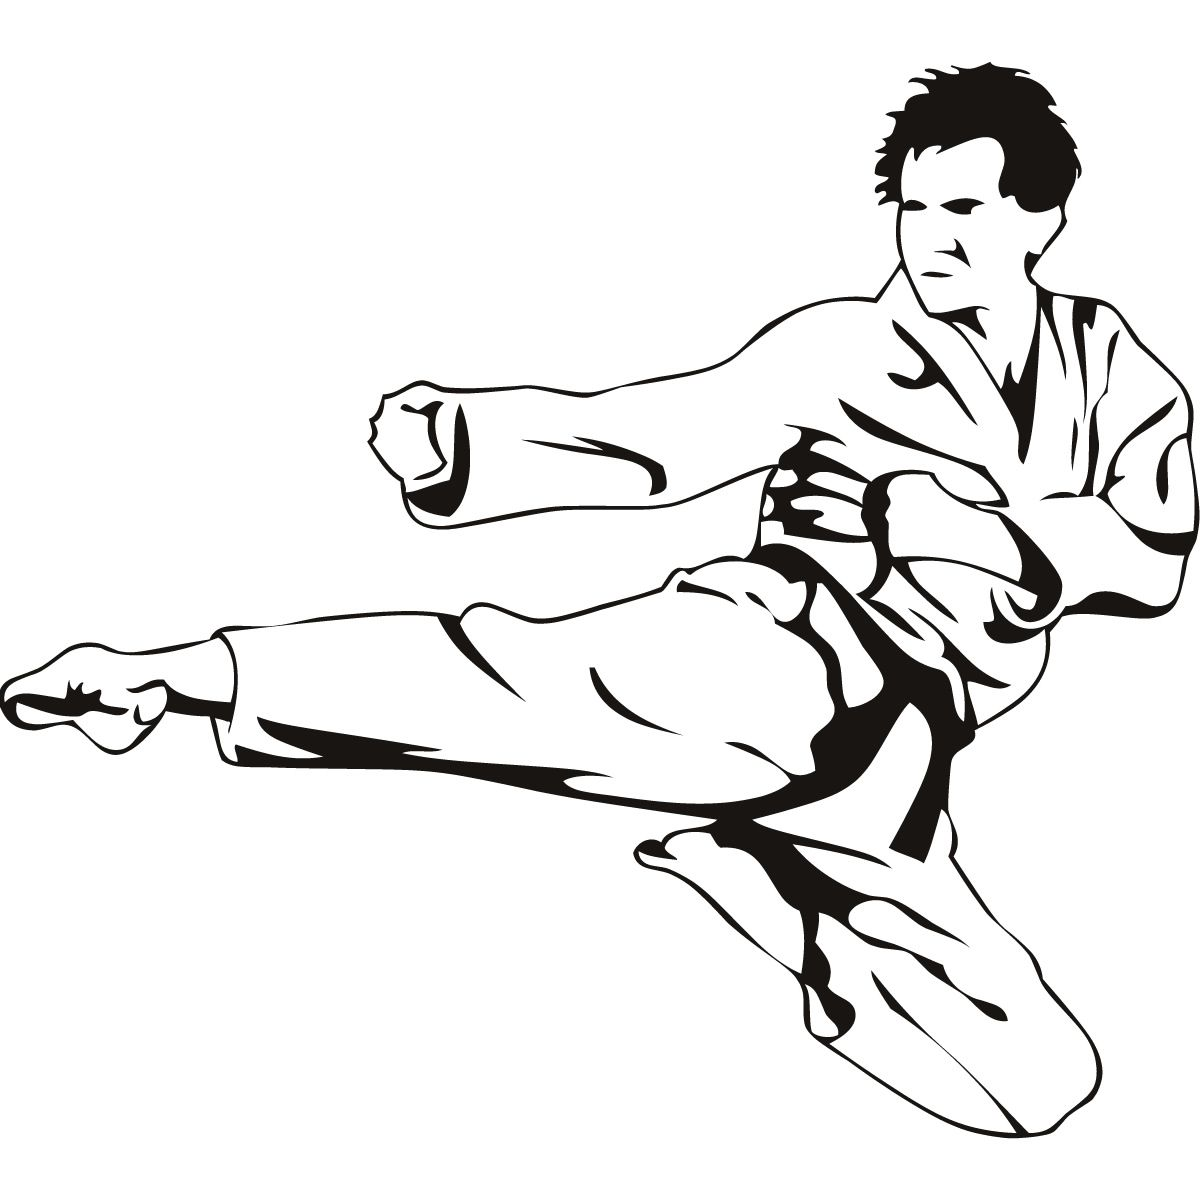 Pin By Pragna Shah On Z Ideas For The Dojo Karate Images Karate Martial Arts